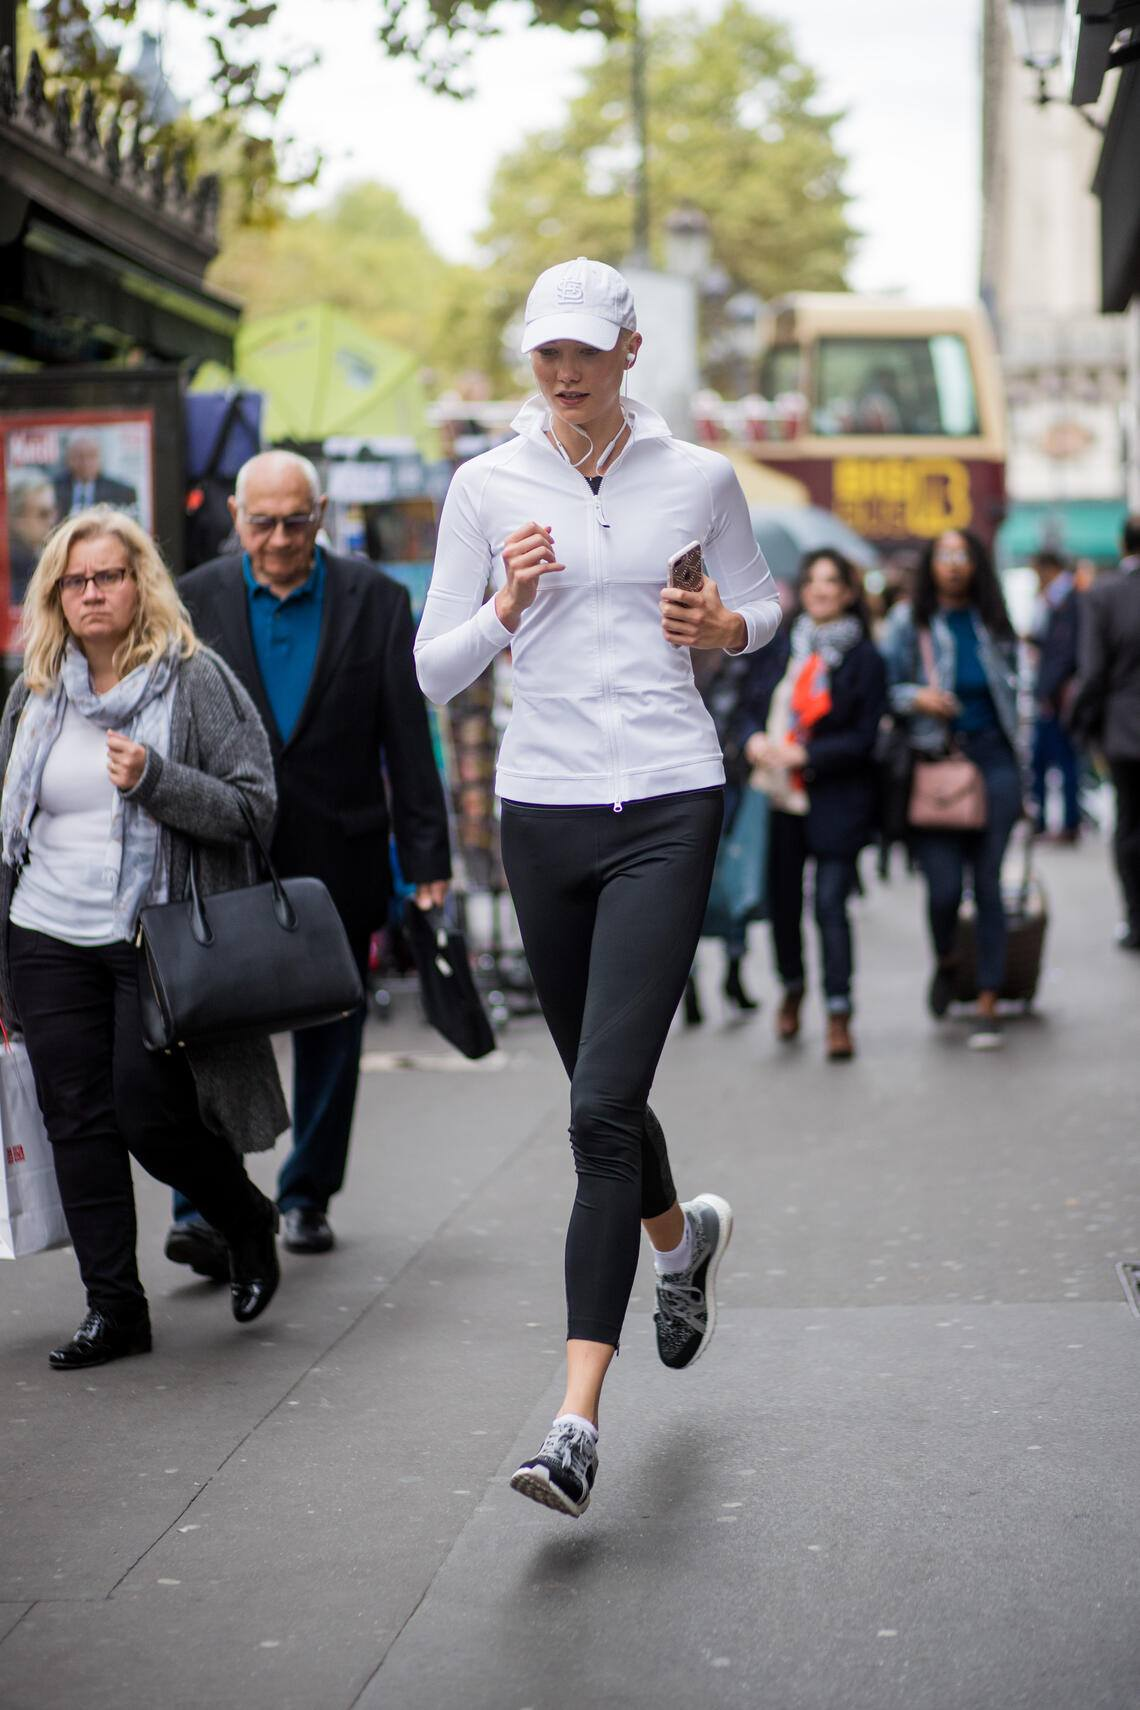 PARIS, FRANCE - SEPTEMBER 28: Karlie Kloss is seen jogging during Paris Fashion Week Spring/Summer 2018 on September 28, 2017 in Paris, France. (Photo by Christian Vierig/Getty Images)